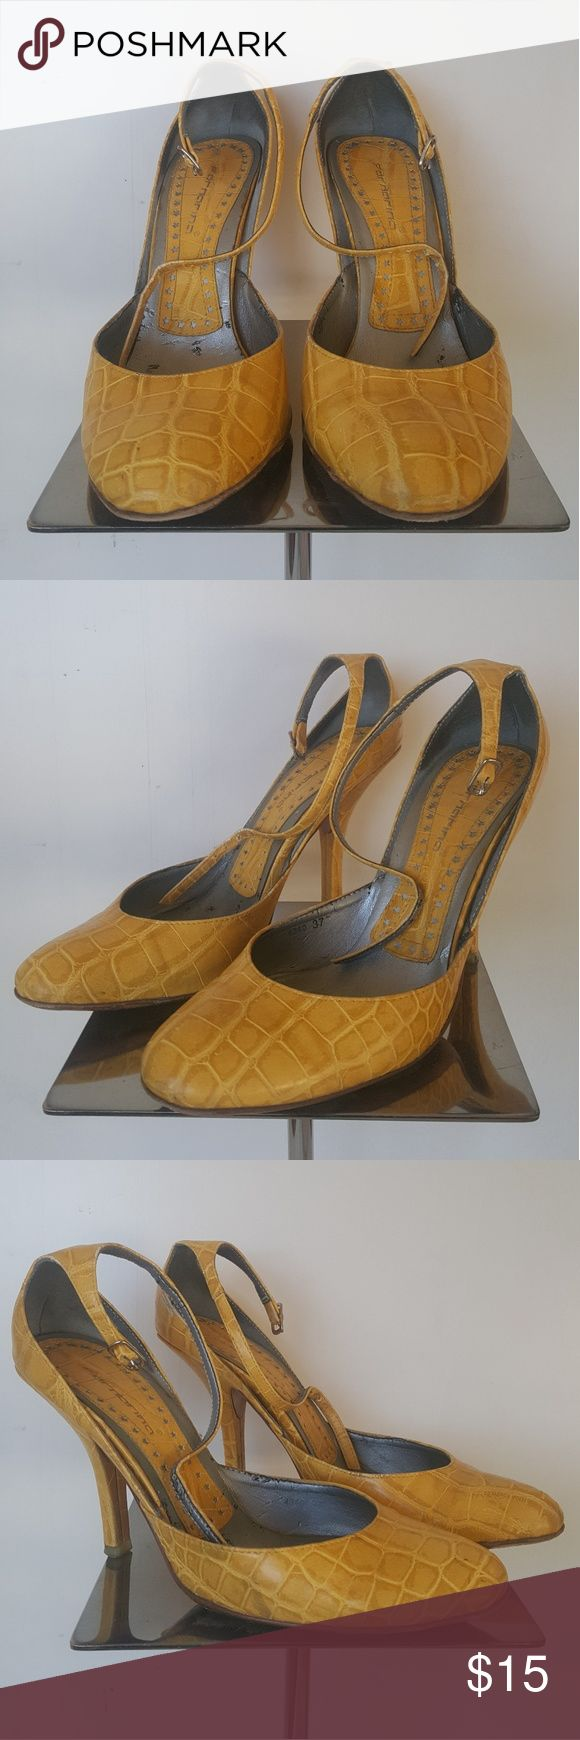 Fornarina Yellow Mary Jane Croc Leather Heels Yellow croc print Mary Jane heels with buckle strap. Pre-loved! Priced to sell or make an offer! Easy to fix missing color spots at a leather shoe repair shop. Fornarina Shoes Heels